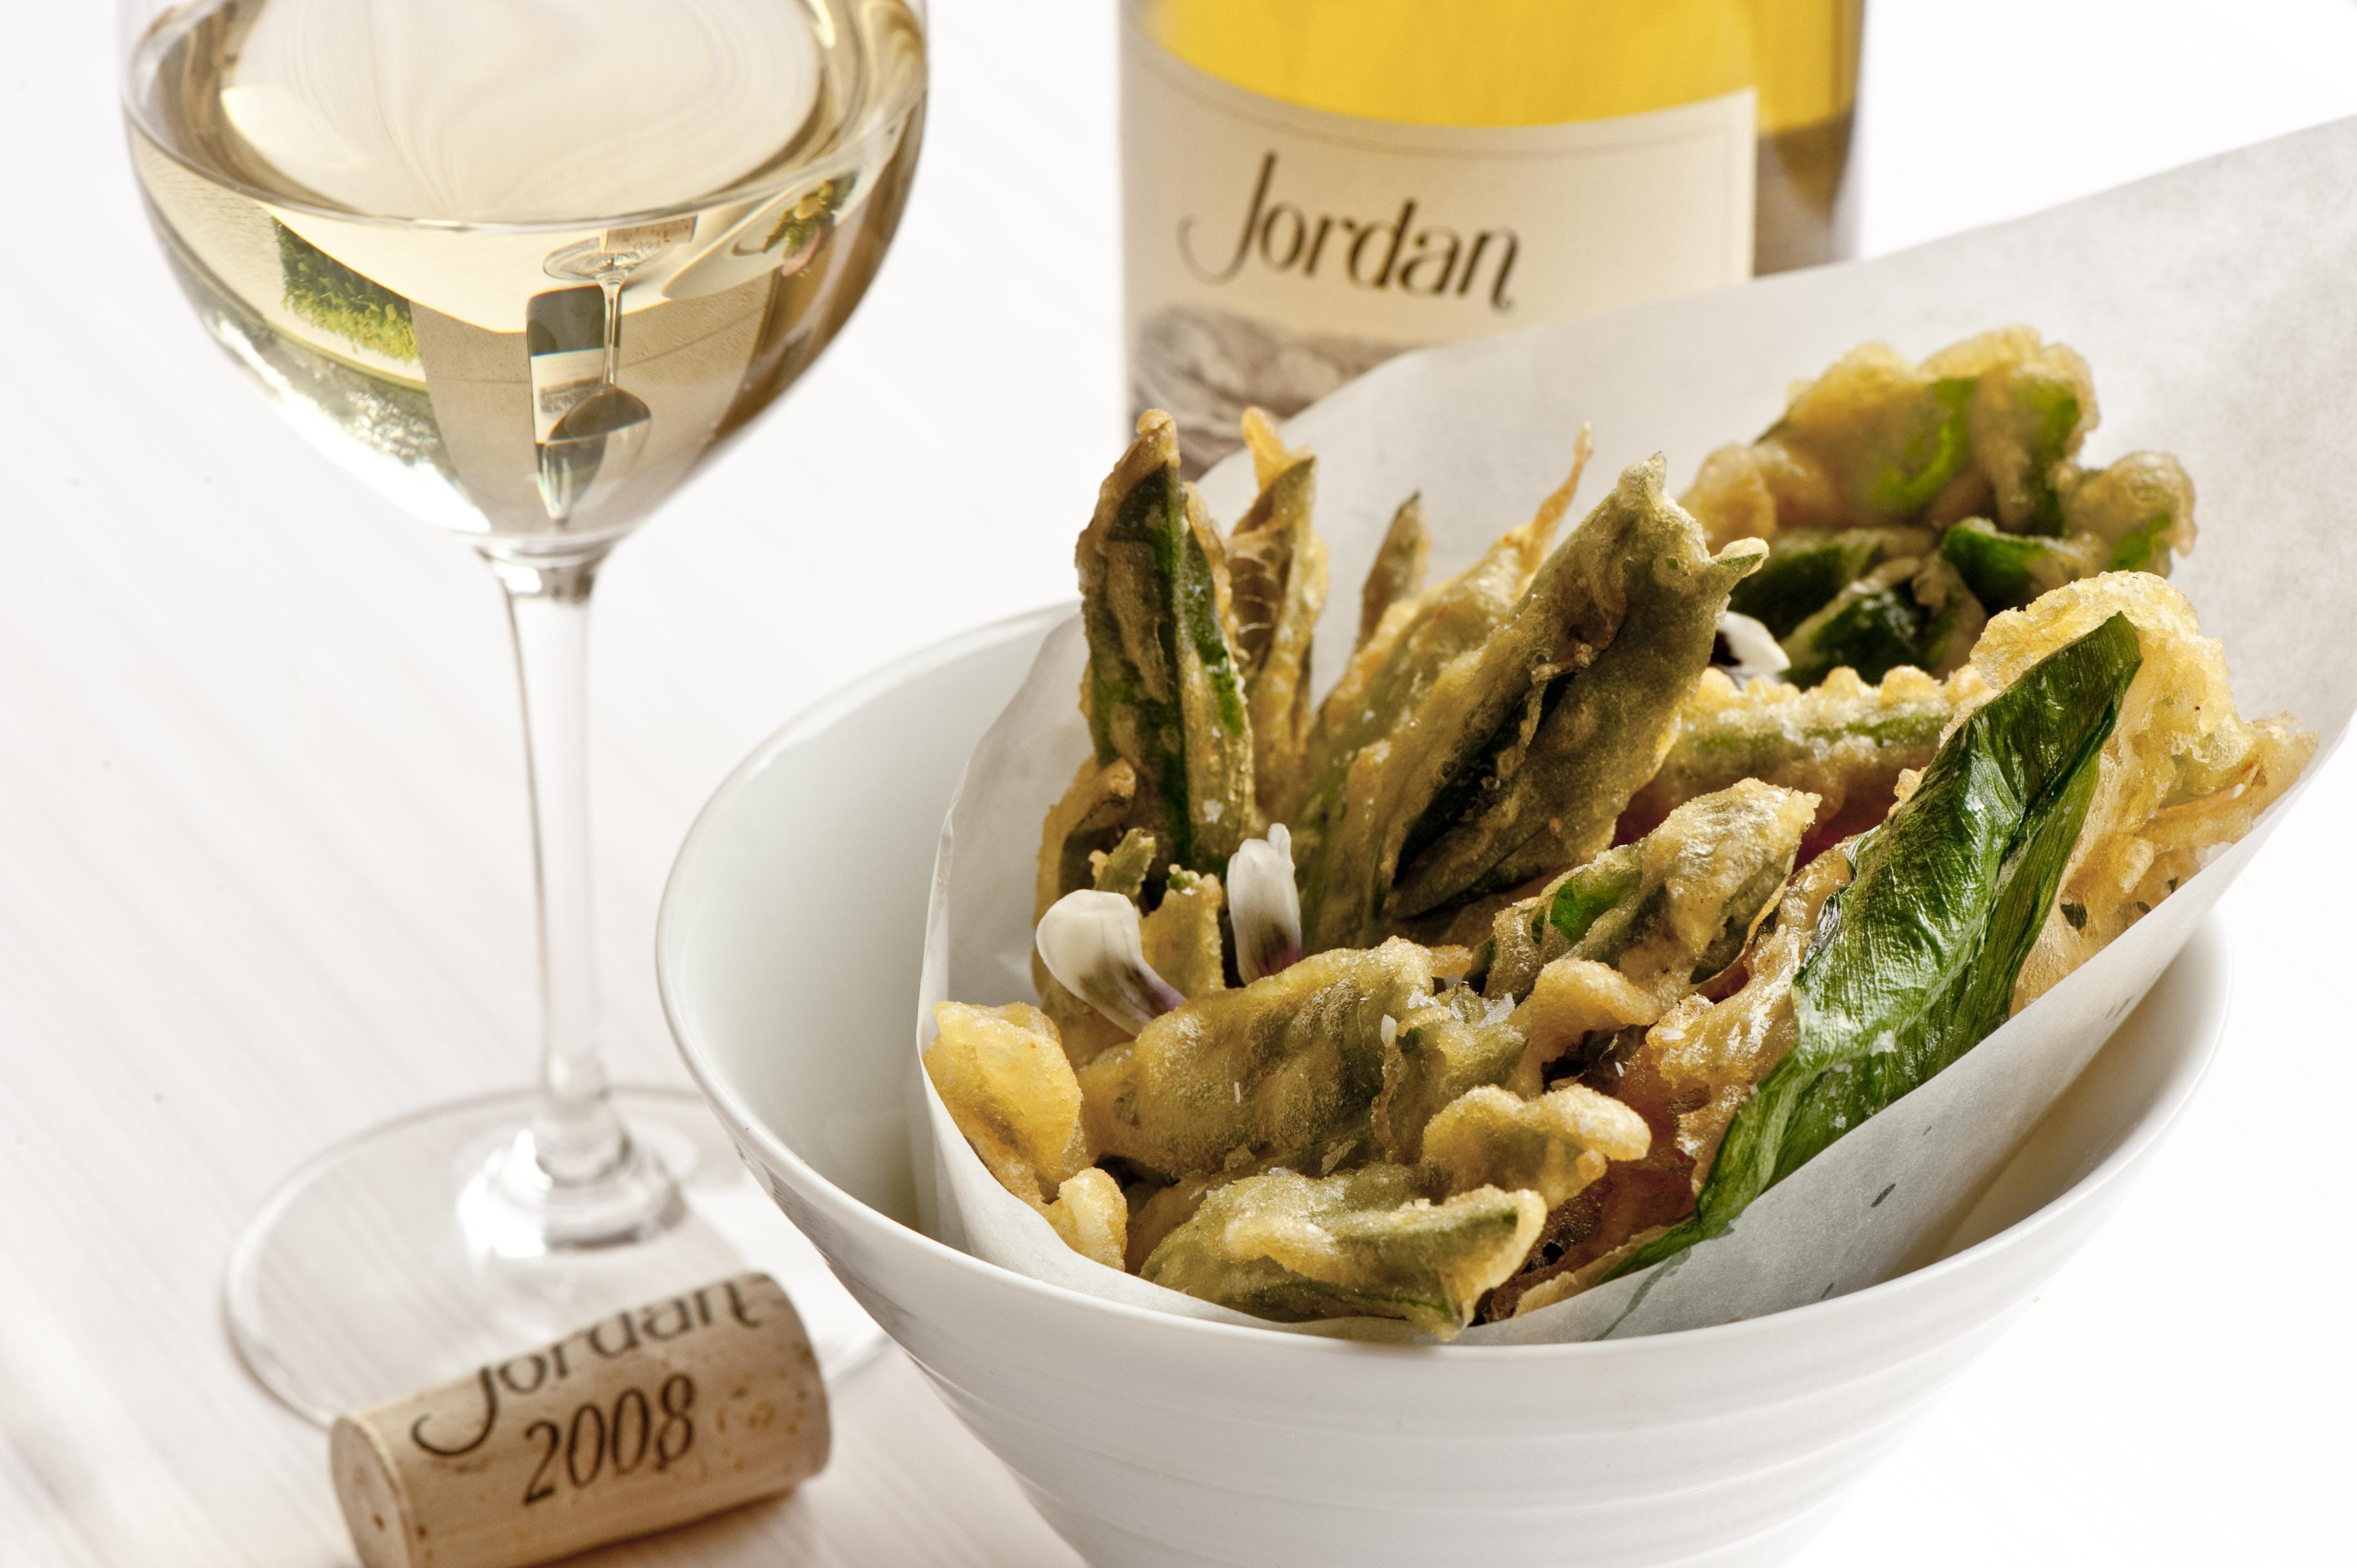 Vegetable tempura recipe and Jordan Chardonnay